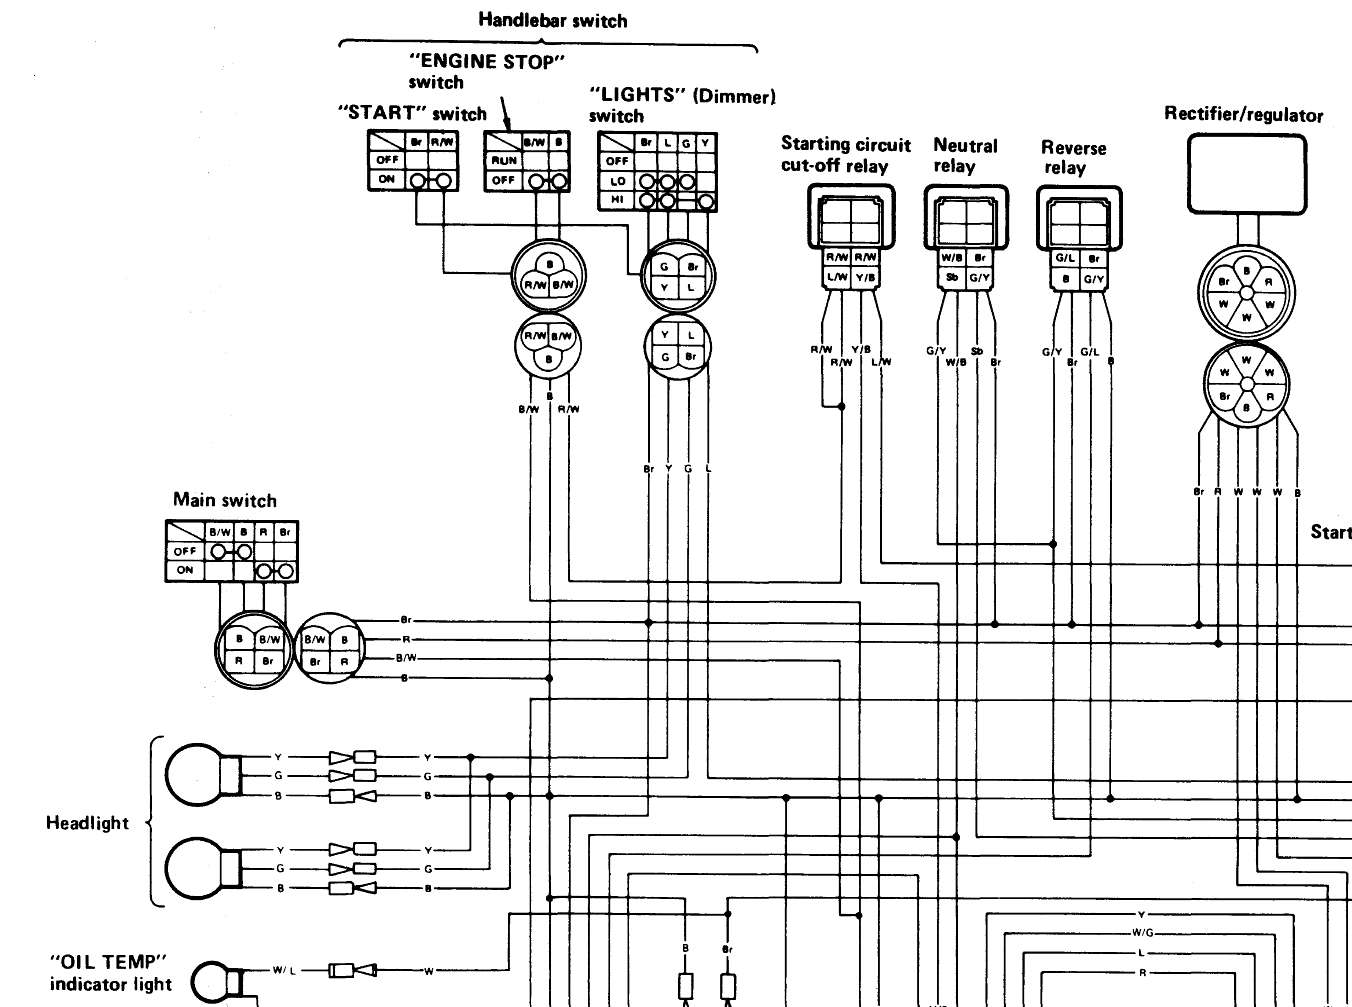 hyosung 250 wiring diagram auto electrical wiring diagram | 99 Mustang Speaker Wiring Diagram |  |